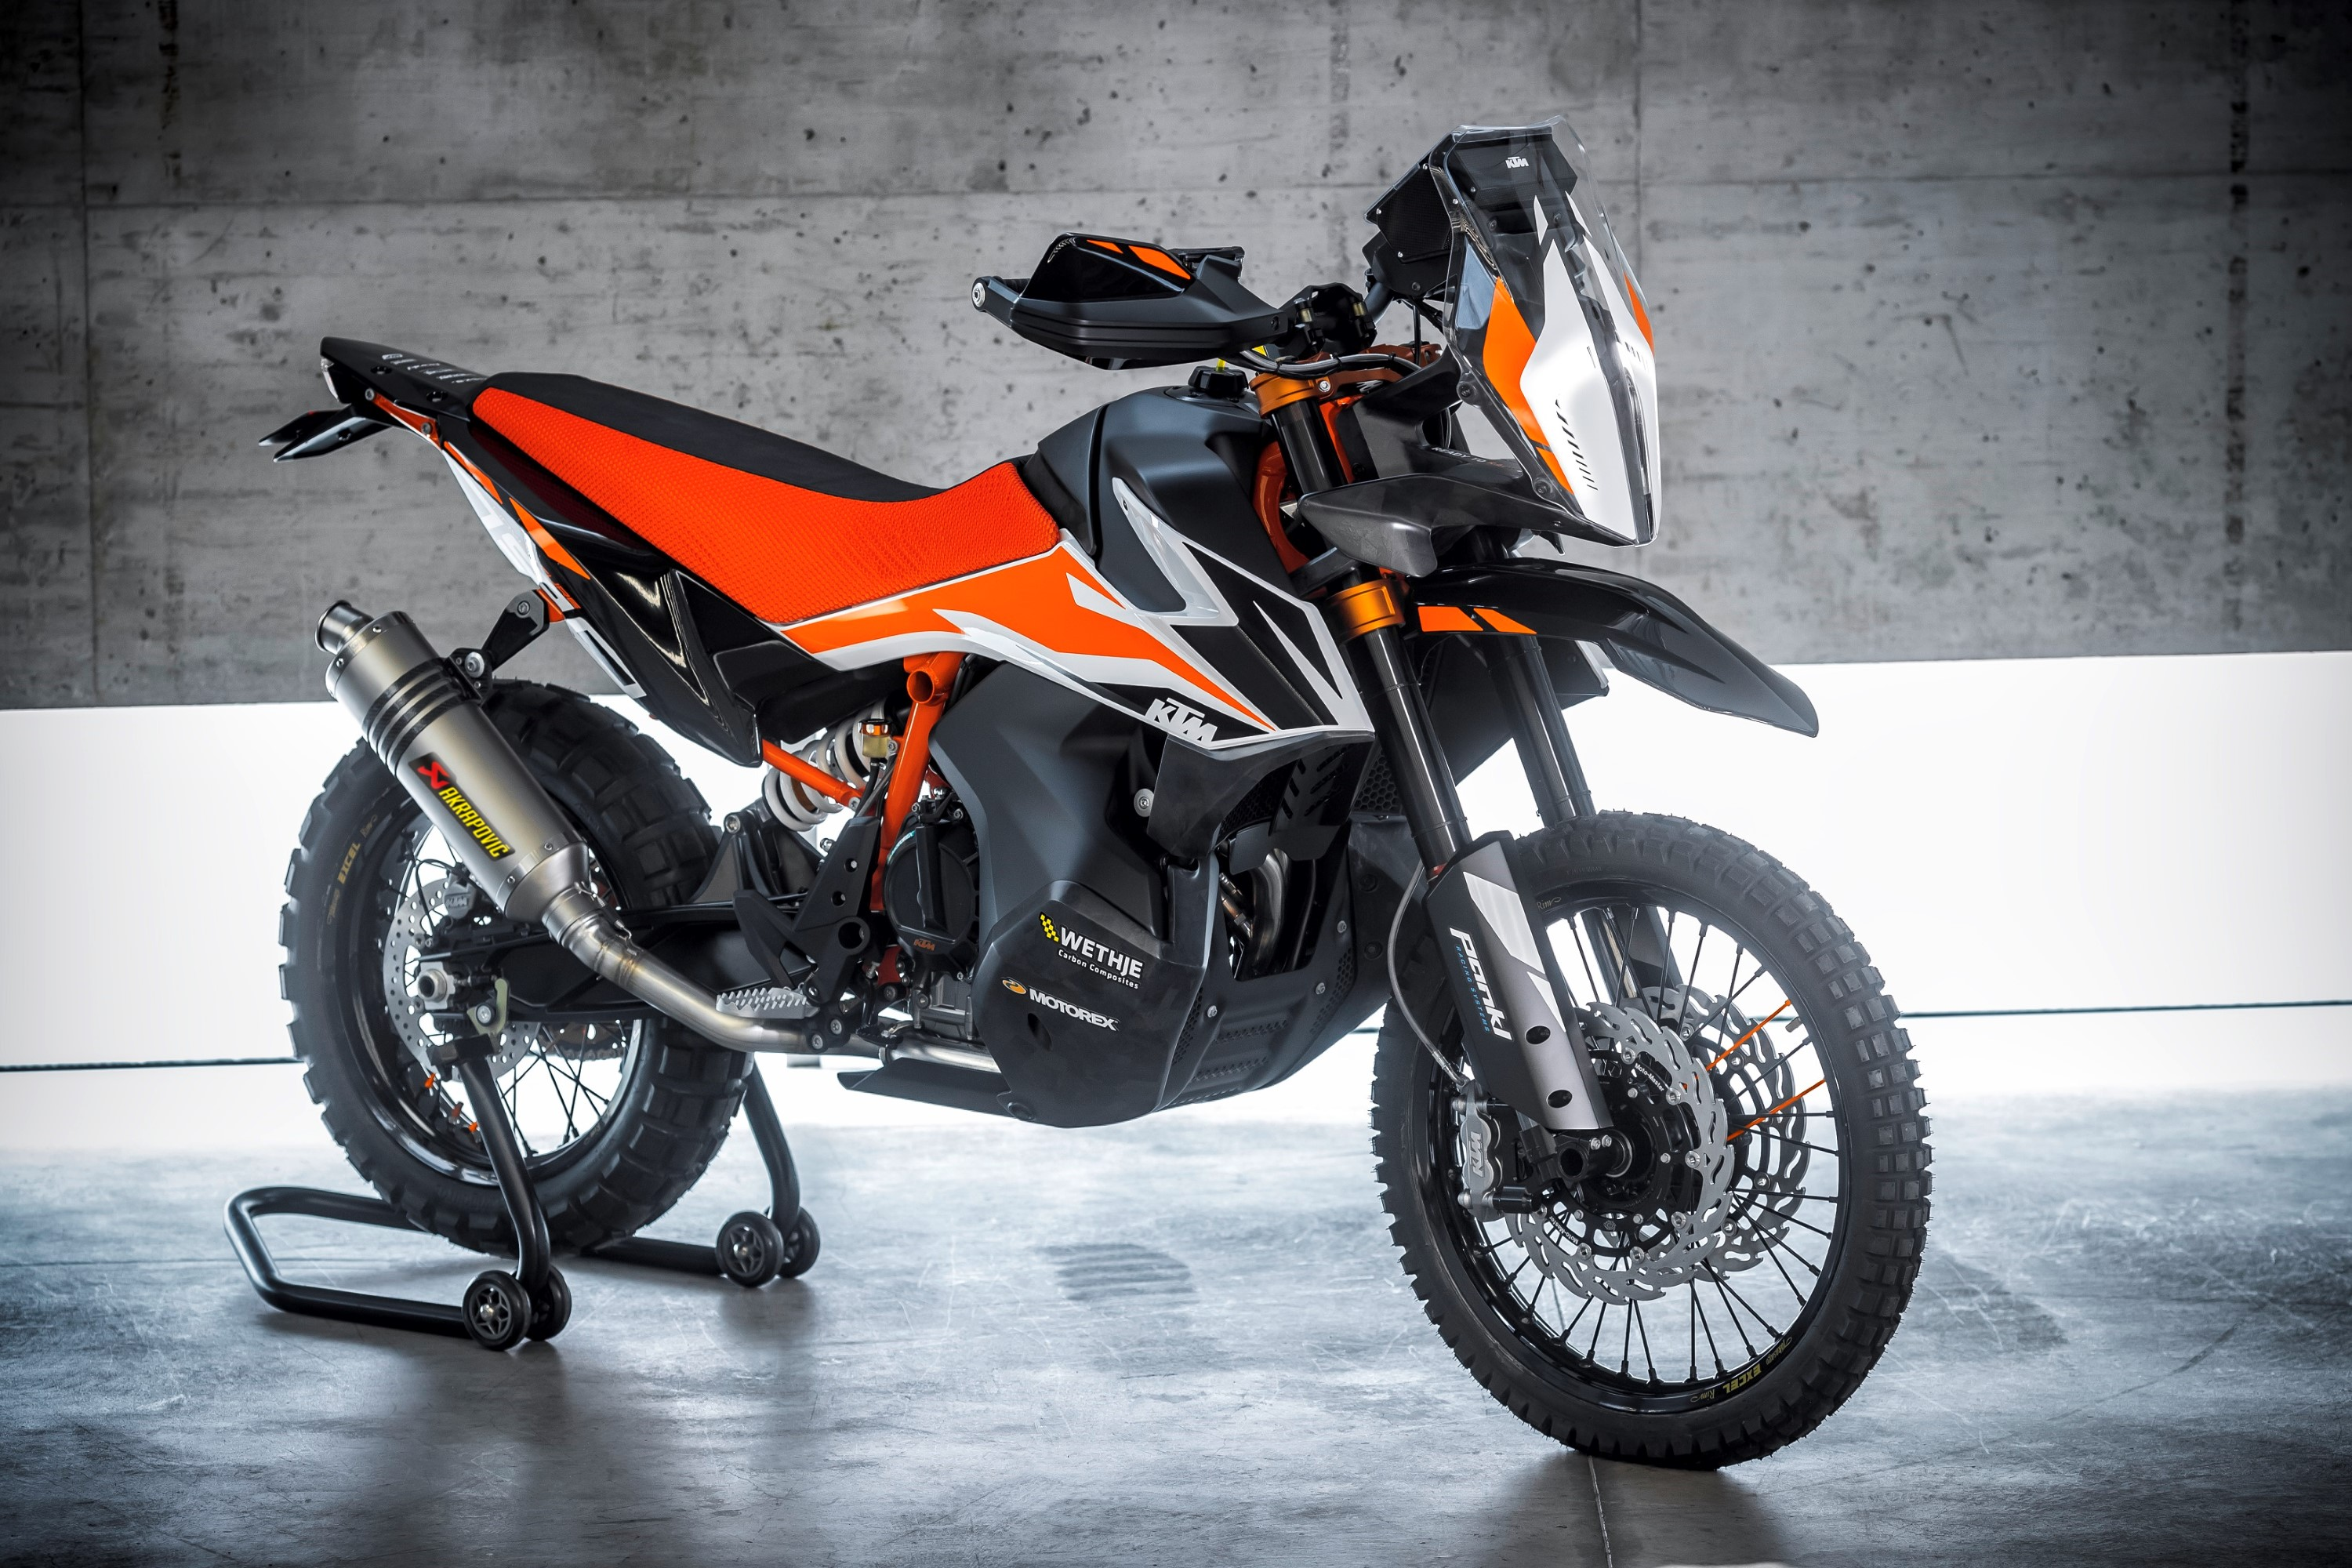 Ktm Motorcycles Models Prices Reviews And News Top Speed Wiring Diagram 125 Exc Six Days 200 Ktms 790 Adventure Gets Spied Testing